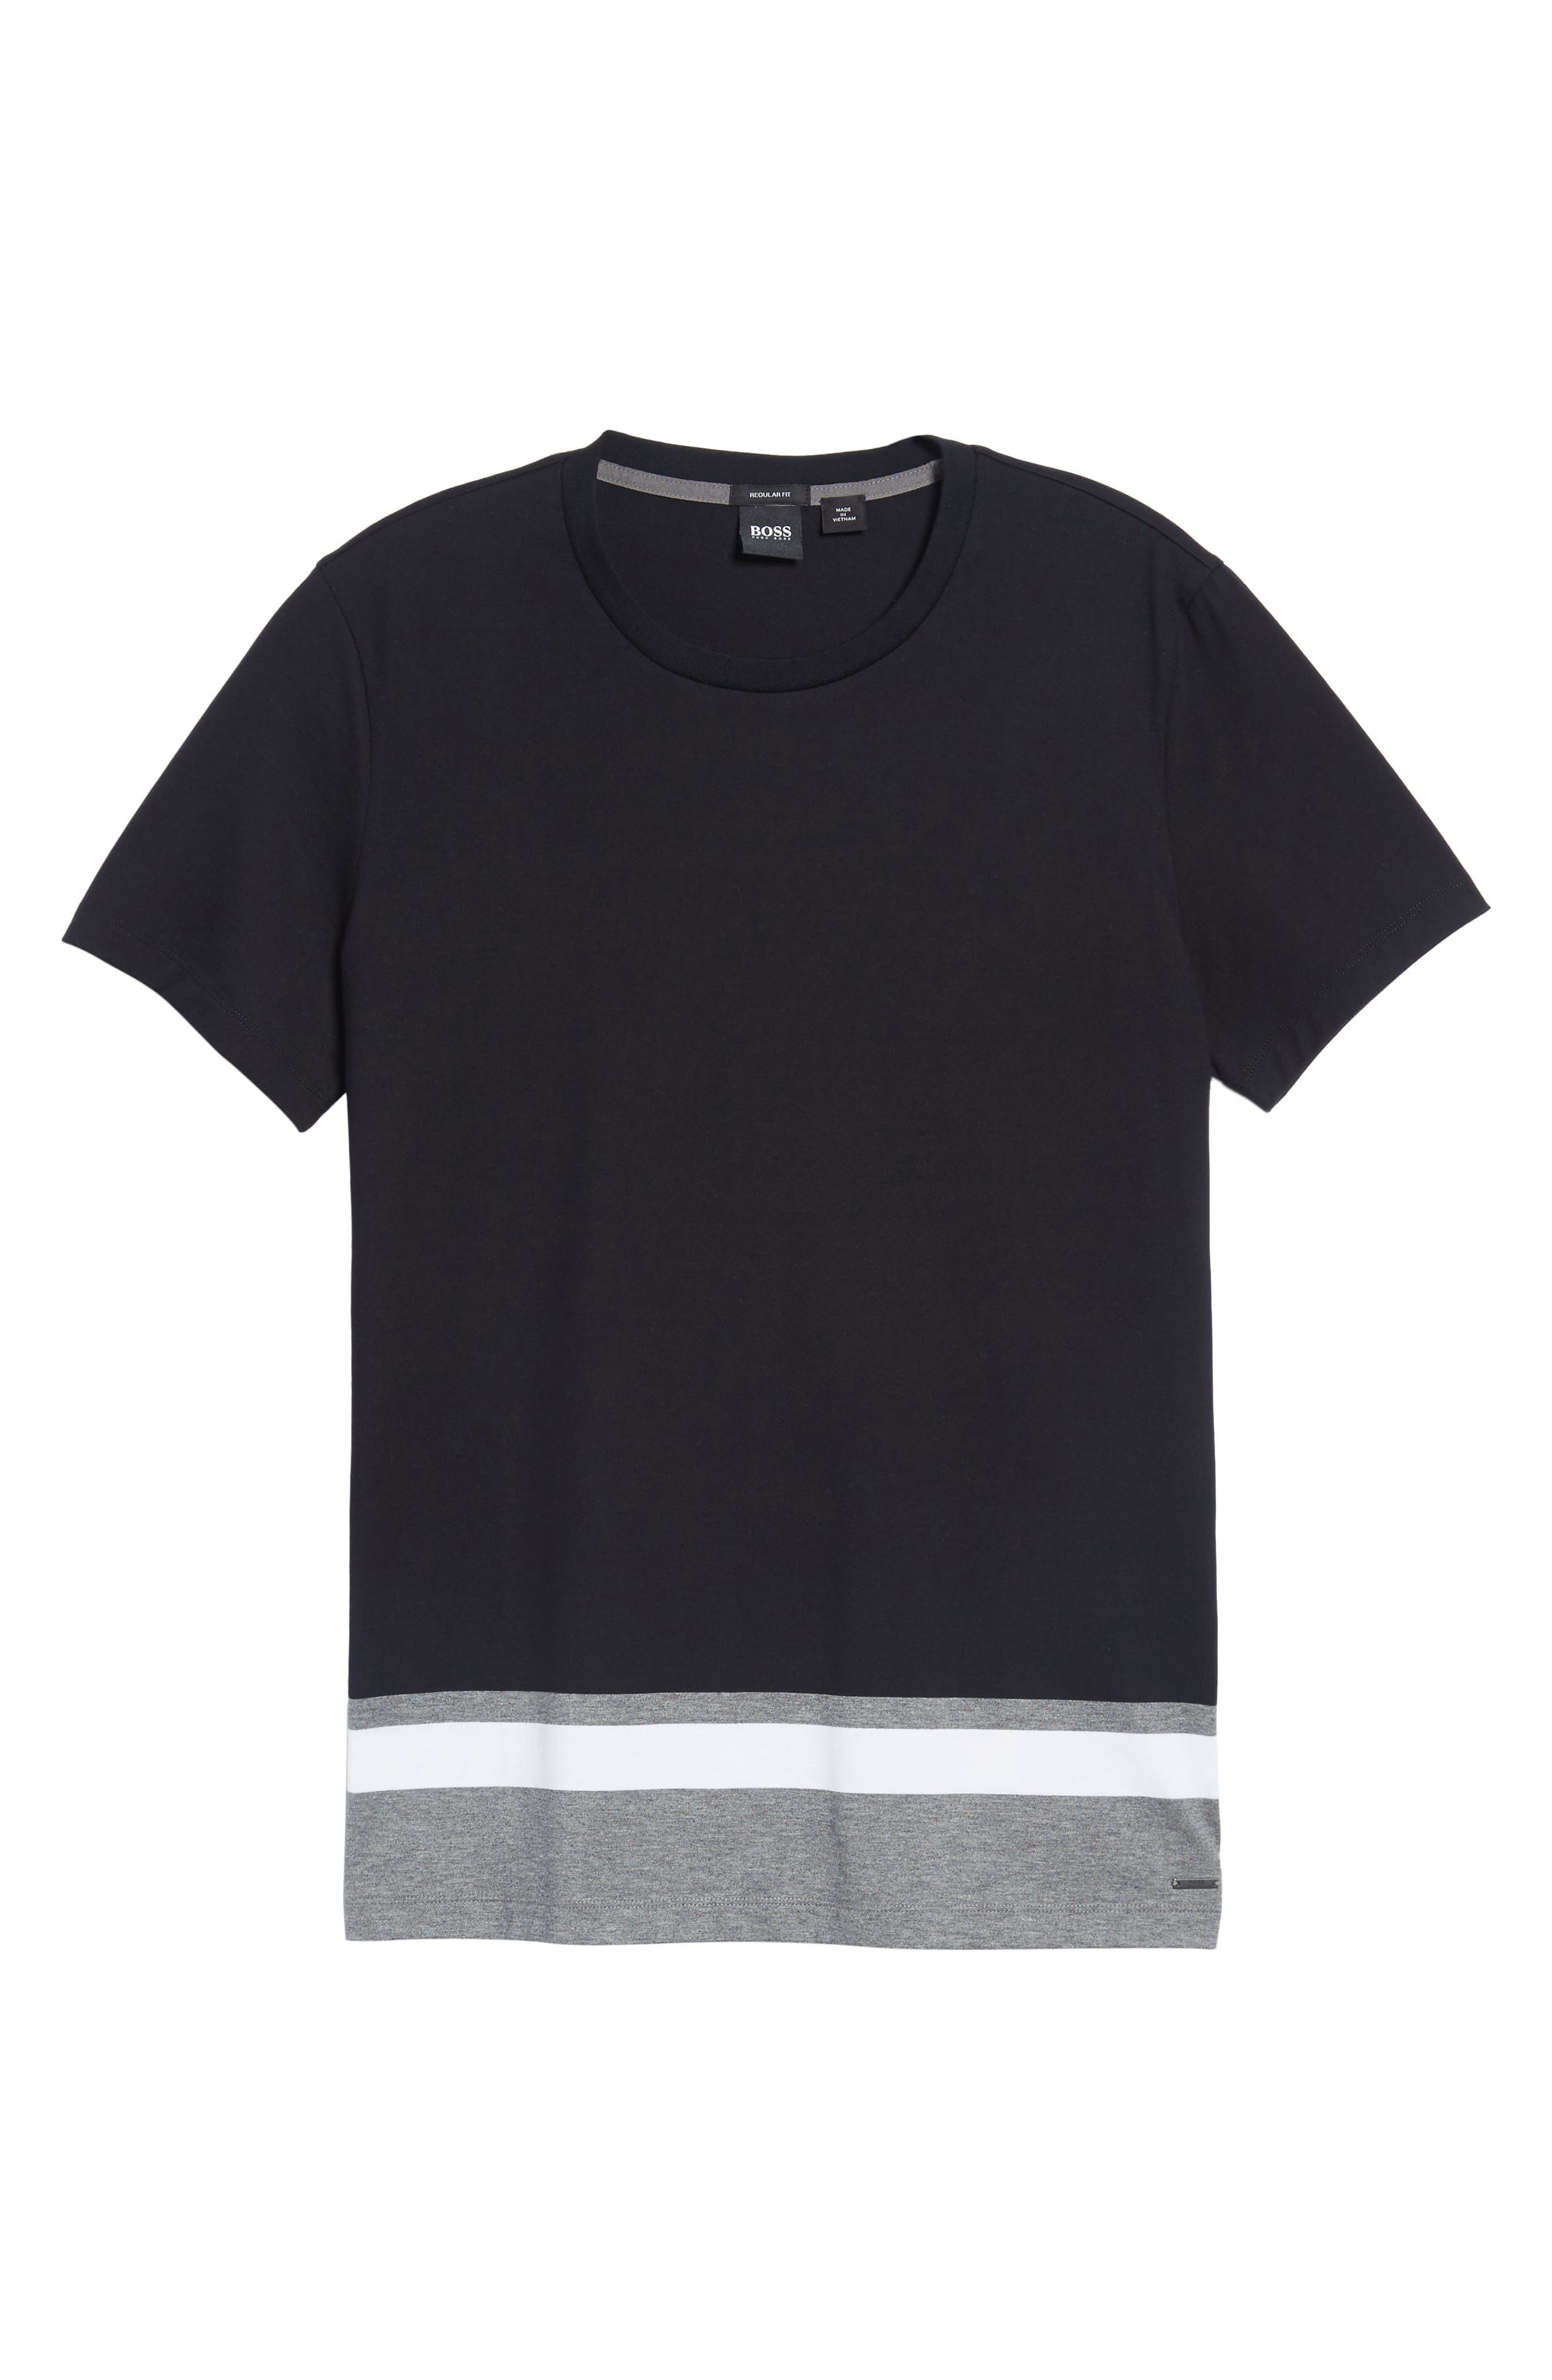 Tiburt Colorblock T-Shirt,                             Alternate thumbnail 6, color,                             001